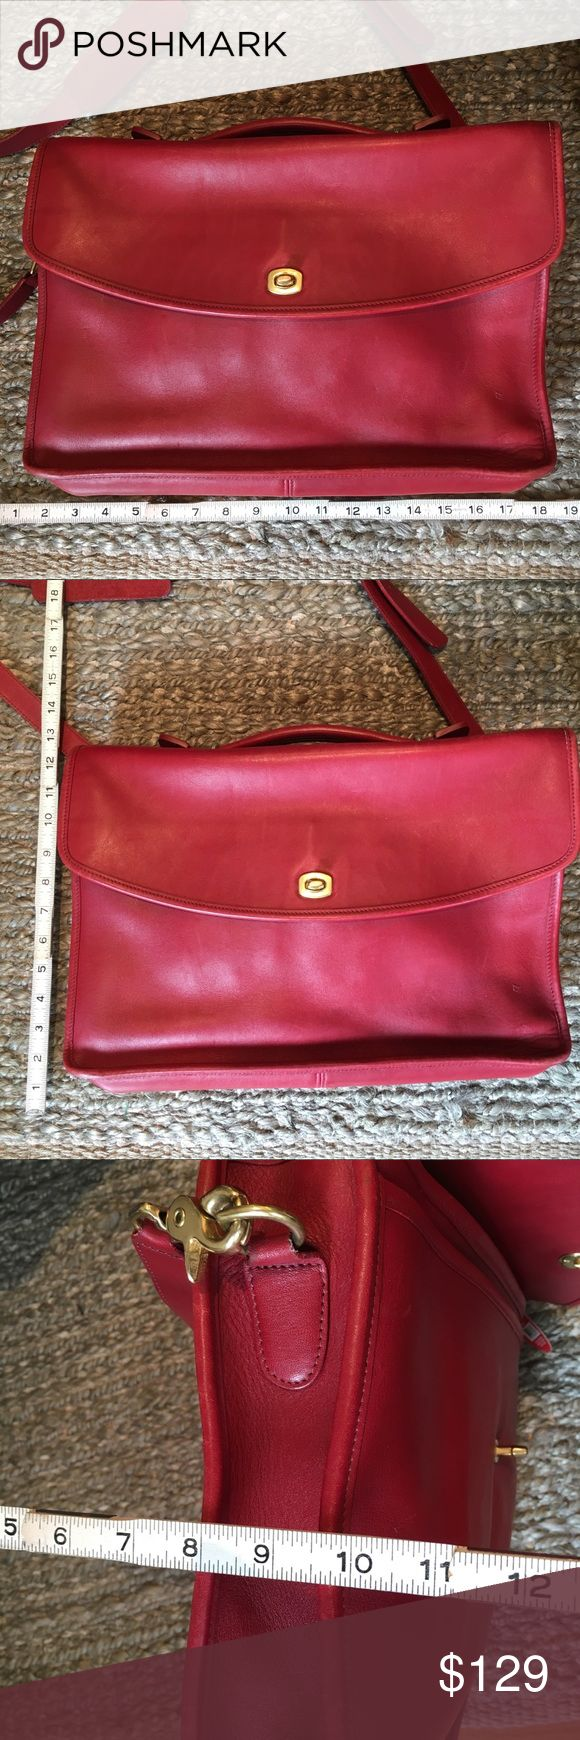 Vintage Red Leather Coach Briefalcase Attaché Rare Red Leather Coach Briefcase/Messenger/Laptop bag in great condition.  There is some wear on the bottom edges and handle.  Please see pictures for details.  No F23-5265 Coach Bags Laptop Bags